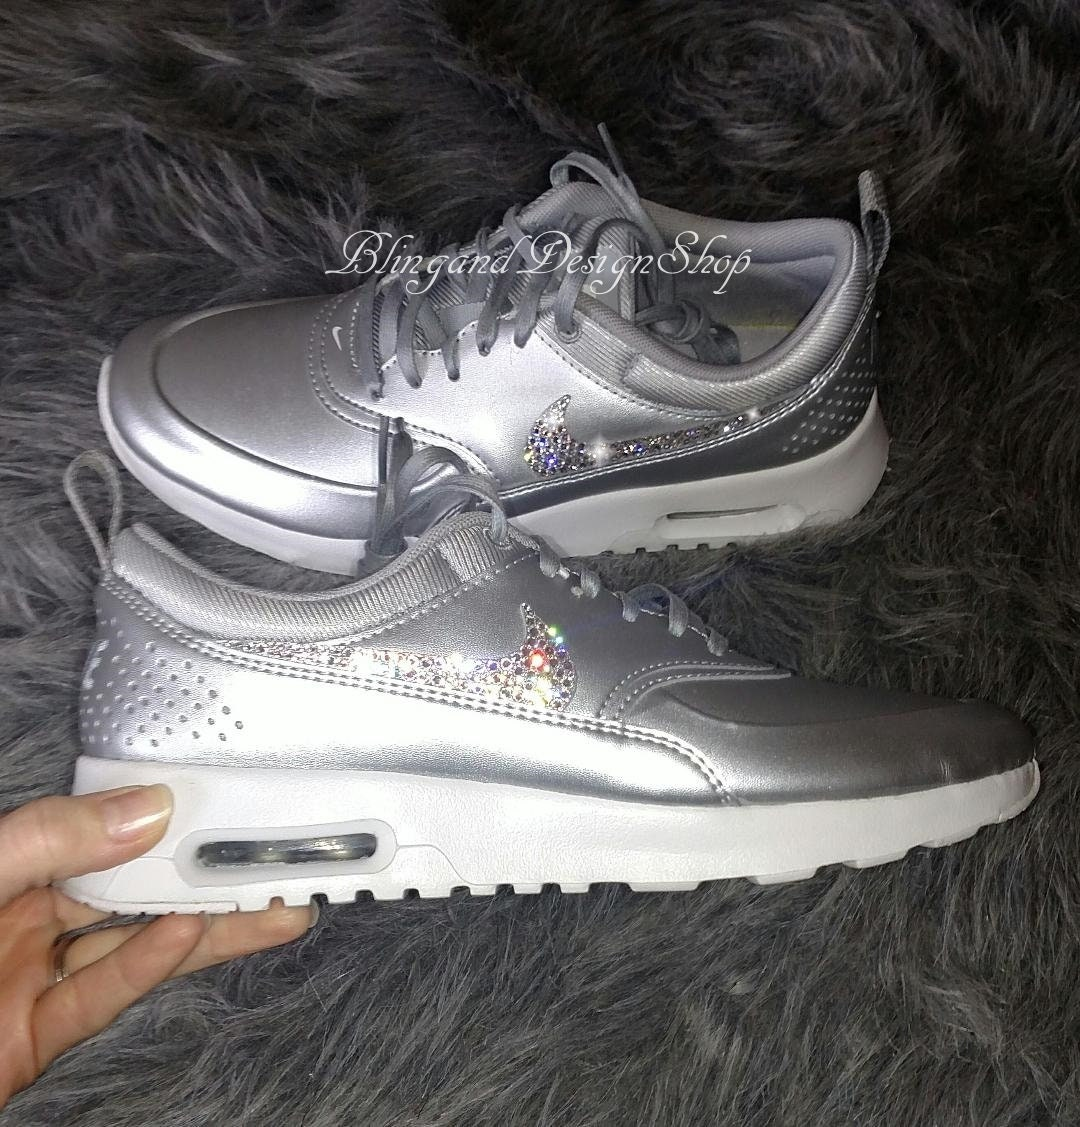 pretty nice 1ca64 cab9e Swarovski Nike Shoes Air Max Thea SE Women s Shoes Customized with Crystal  Swarovski Rhinestones Bling Nike Shoes, Bridal Shoes